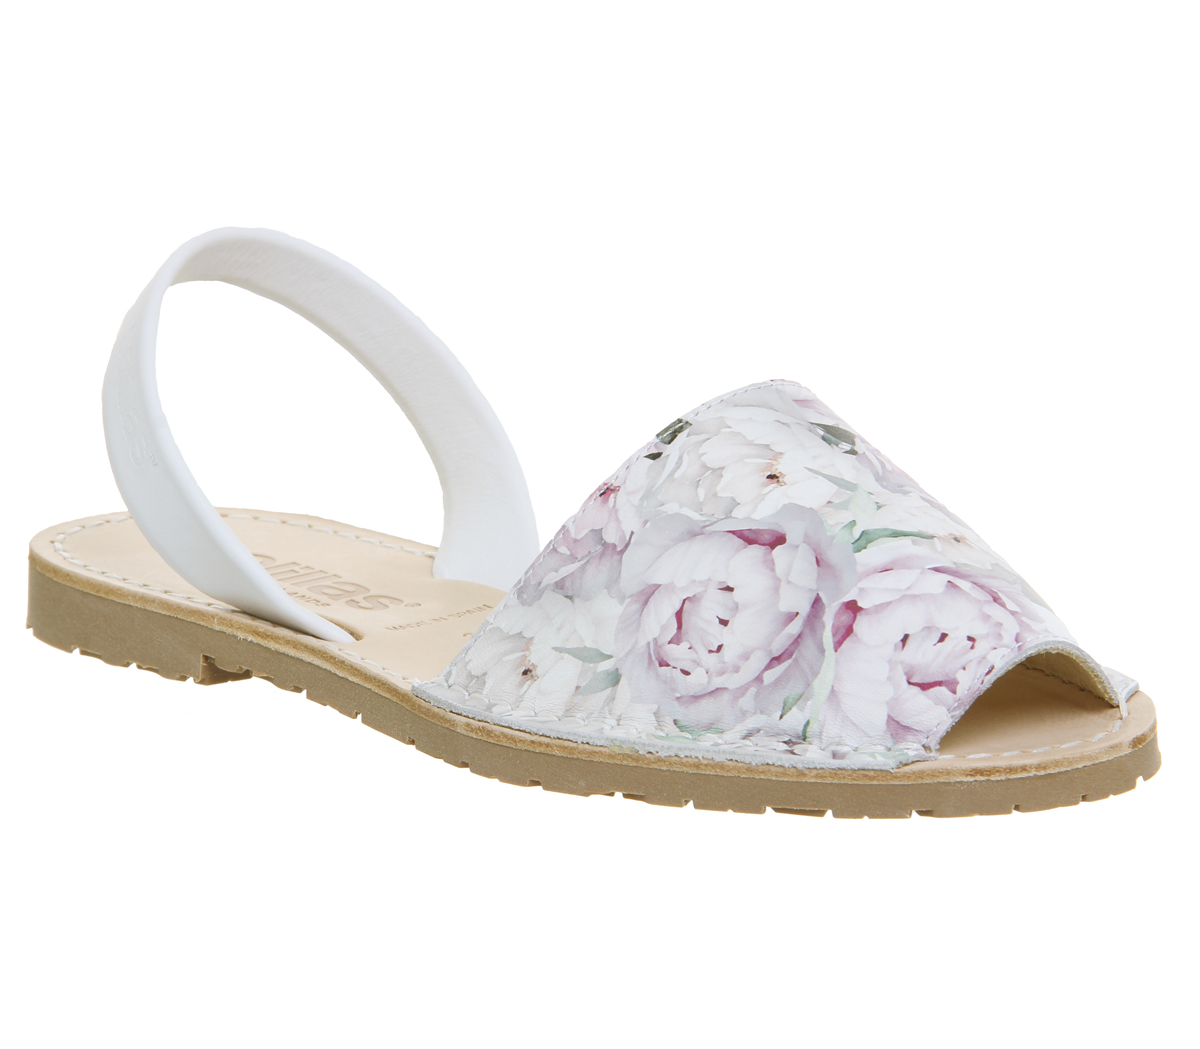 Womens-Solillas-Solillas-Sandals-Floral-Print-Sandals thumbnail 3